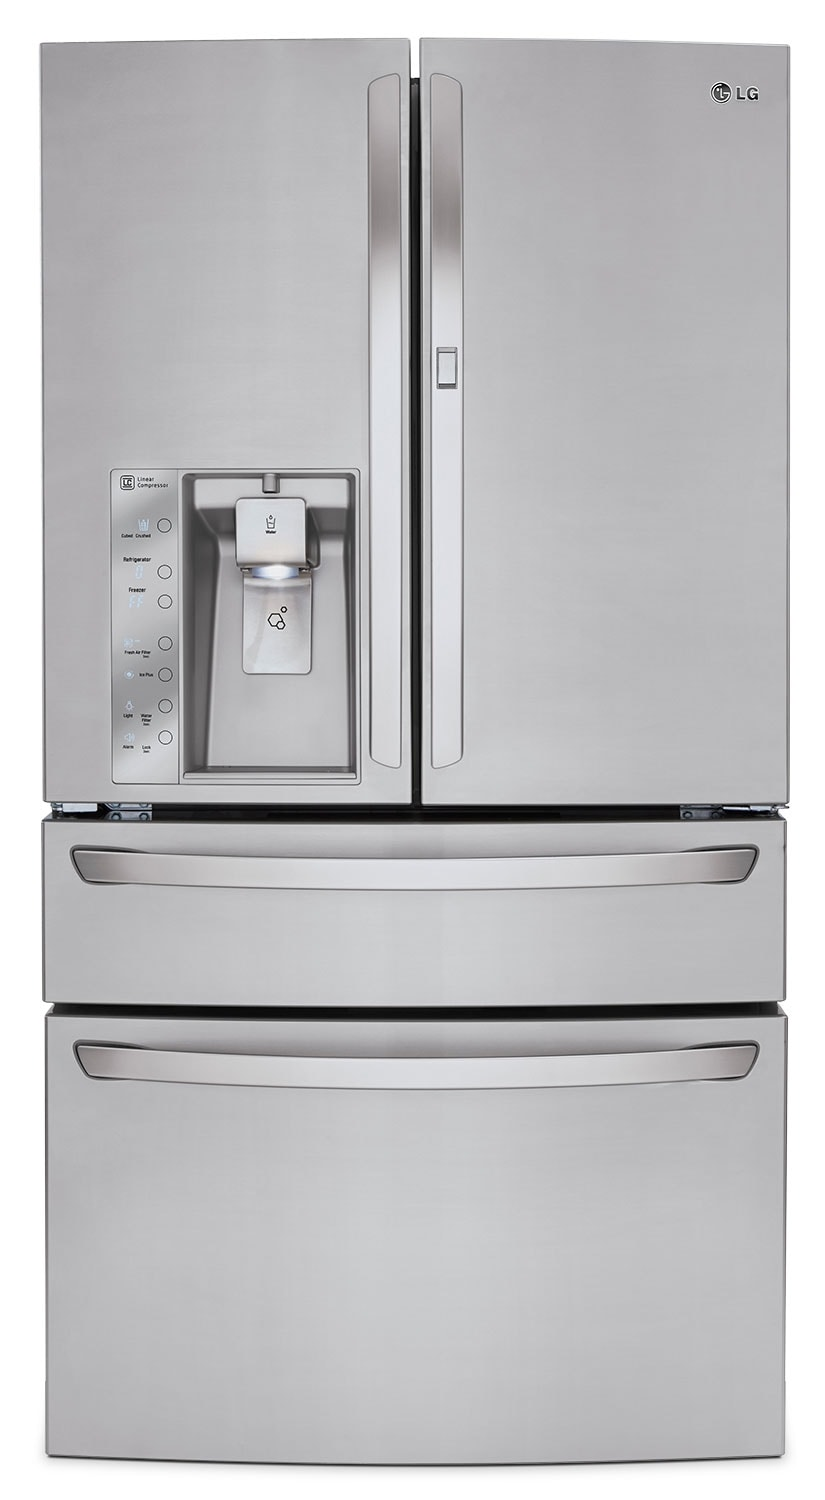 Refrigerators and Freezers - LG Appliances Stainless Steel French Door Refrigerator (29.7 Cu. Ft.) - LMXS30776S